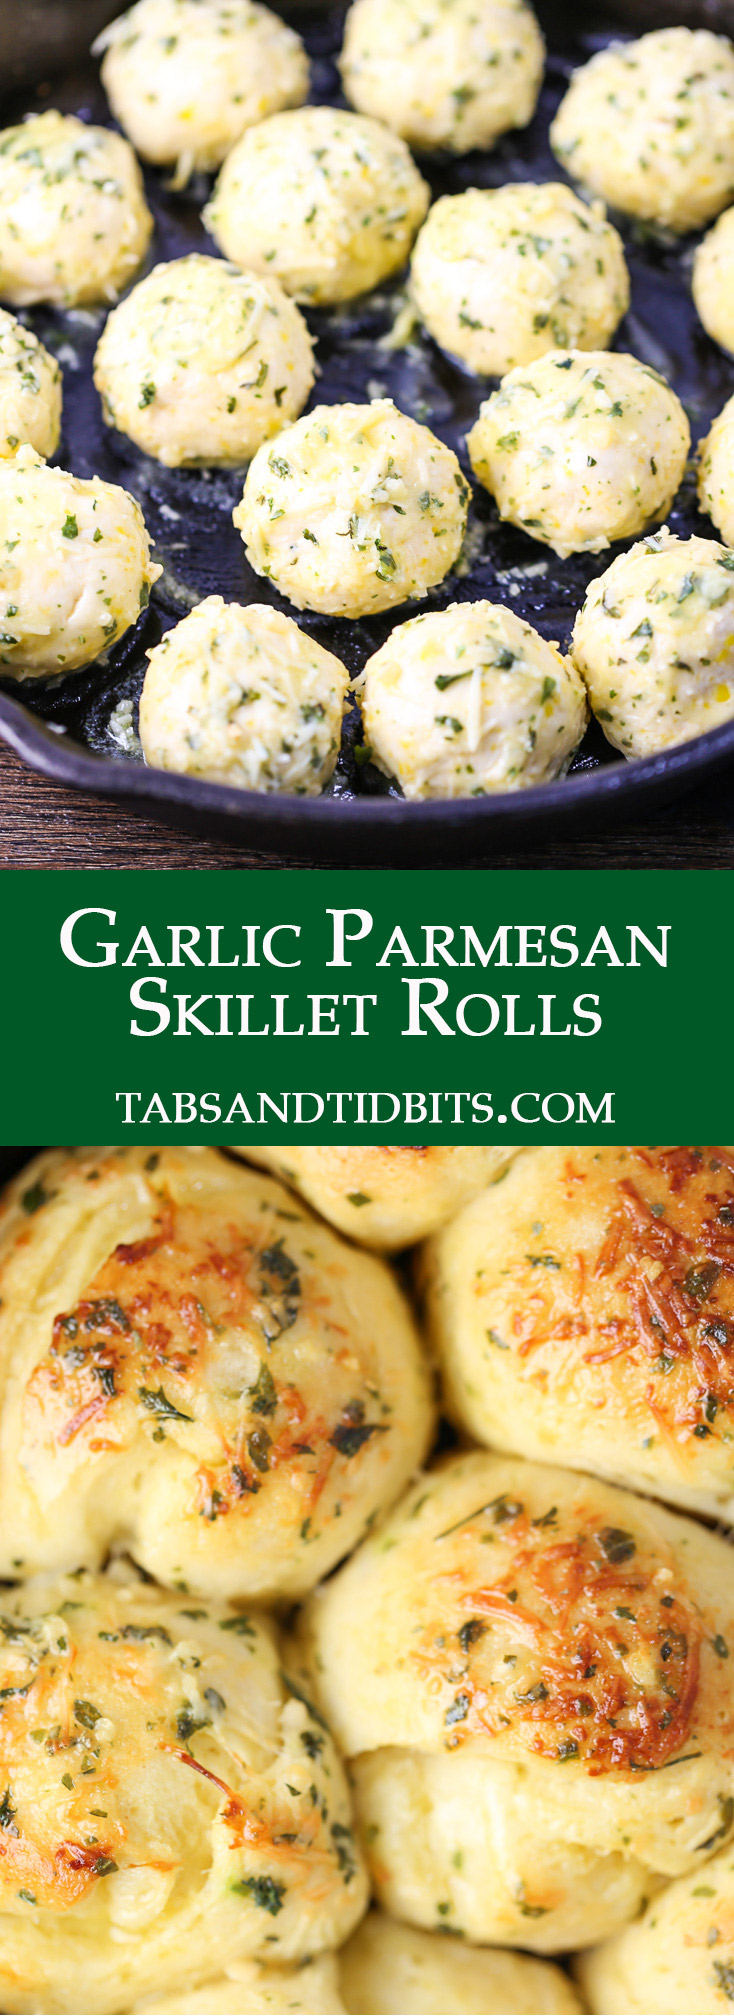 Refrigerated biscuits coated with a buttery garlic herb mix with freshly grated Parmesan cheese!